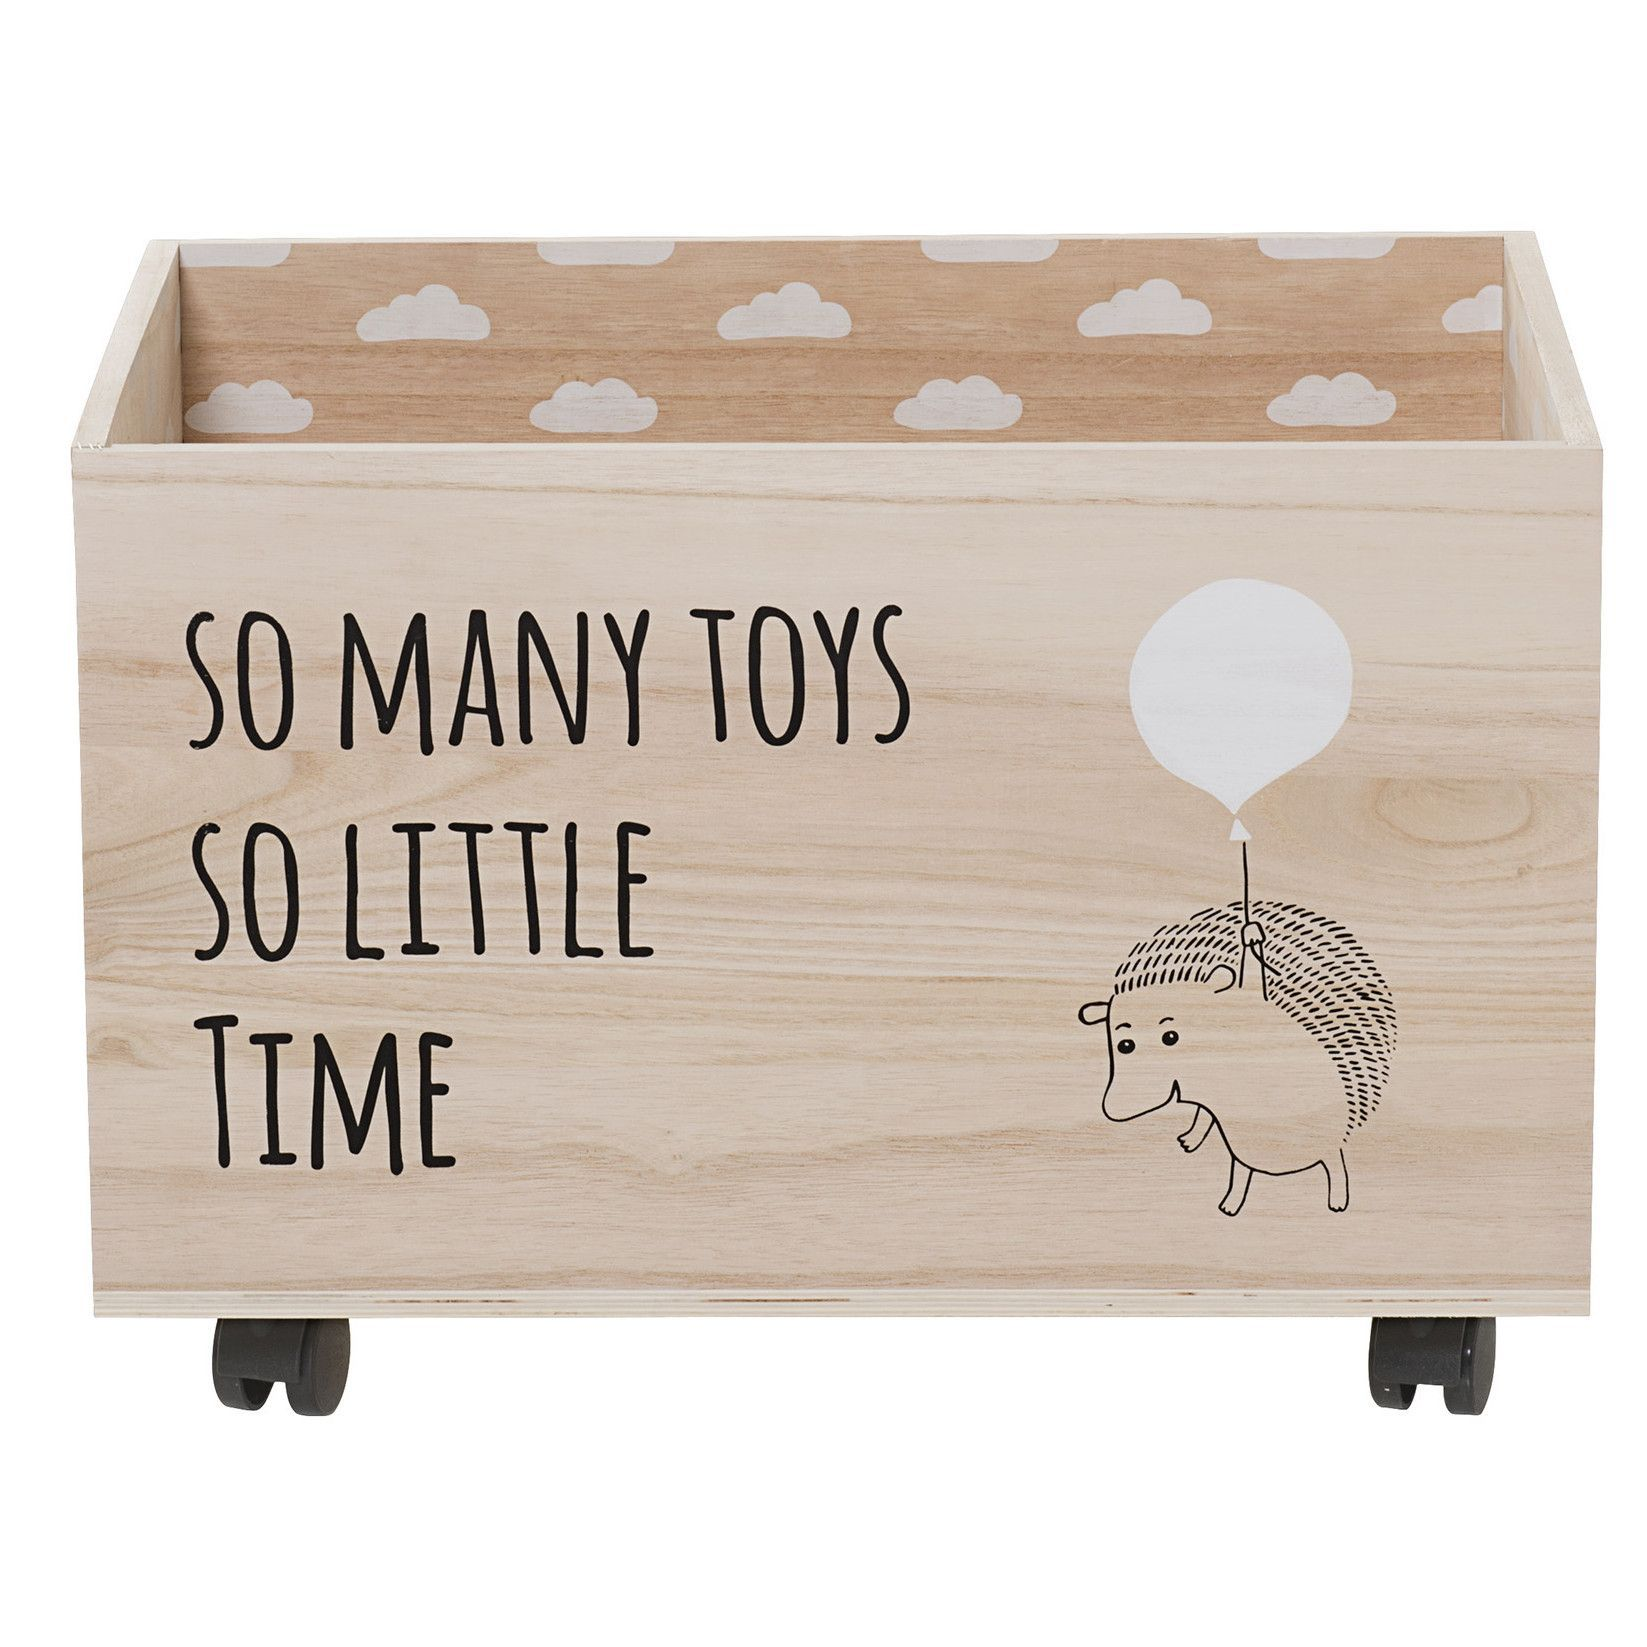 Features Material Paulownia Wood Color Natural With Black And White Text Image Text Reads So Many Toys Wooden Toy Boxes Wood Storage Box